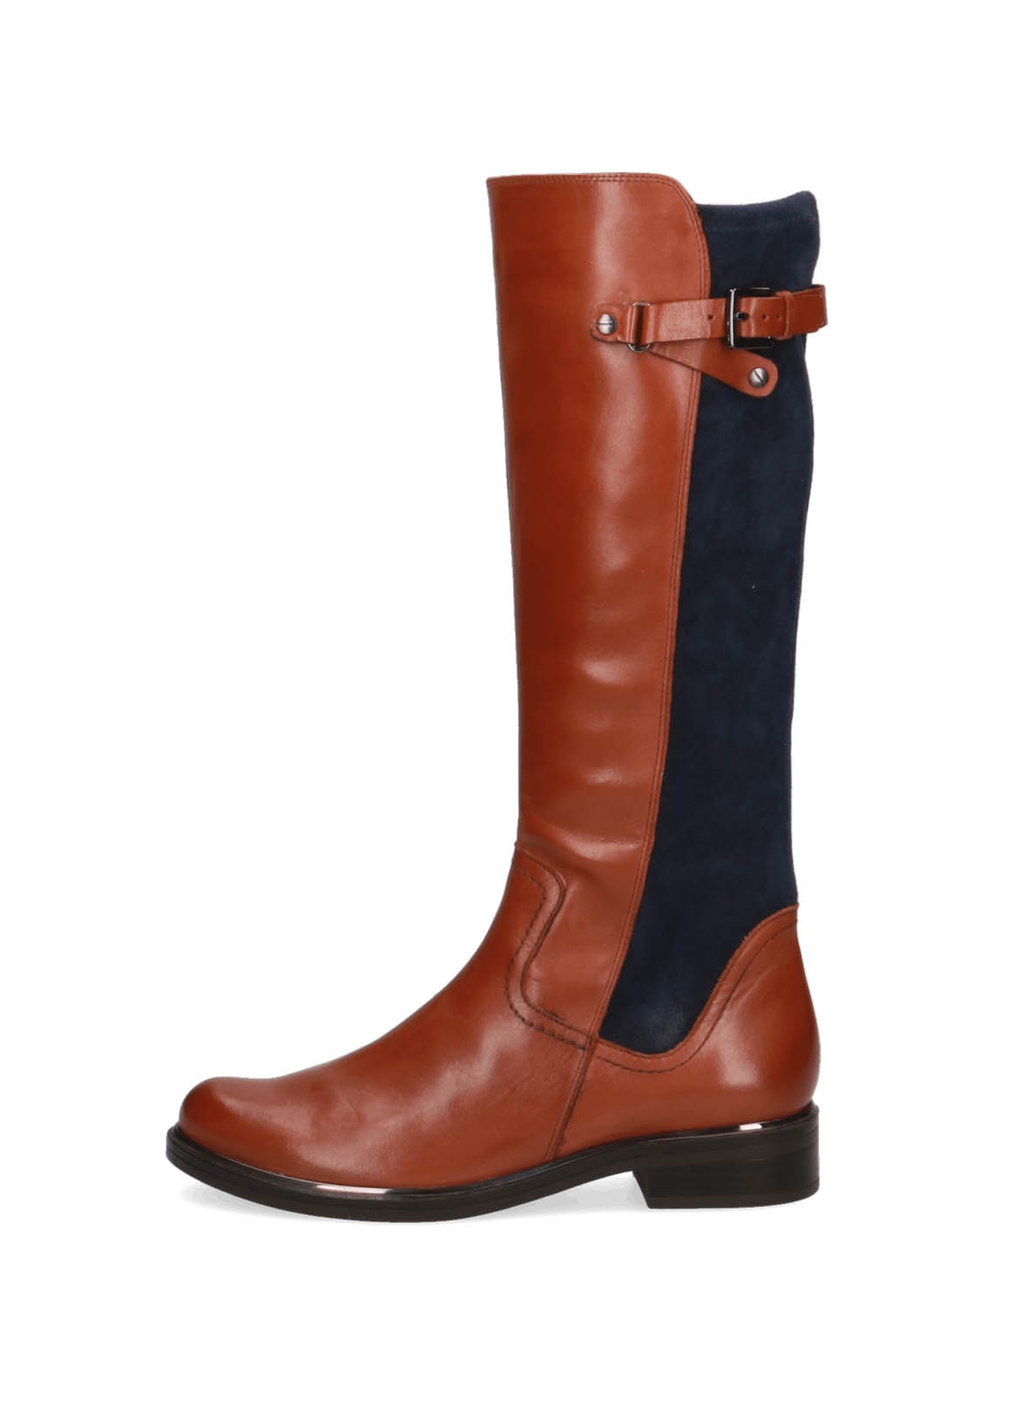 Caprice Emma Knee-High Leather Boots in Cognac